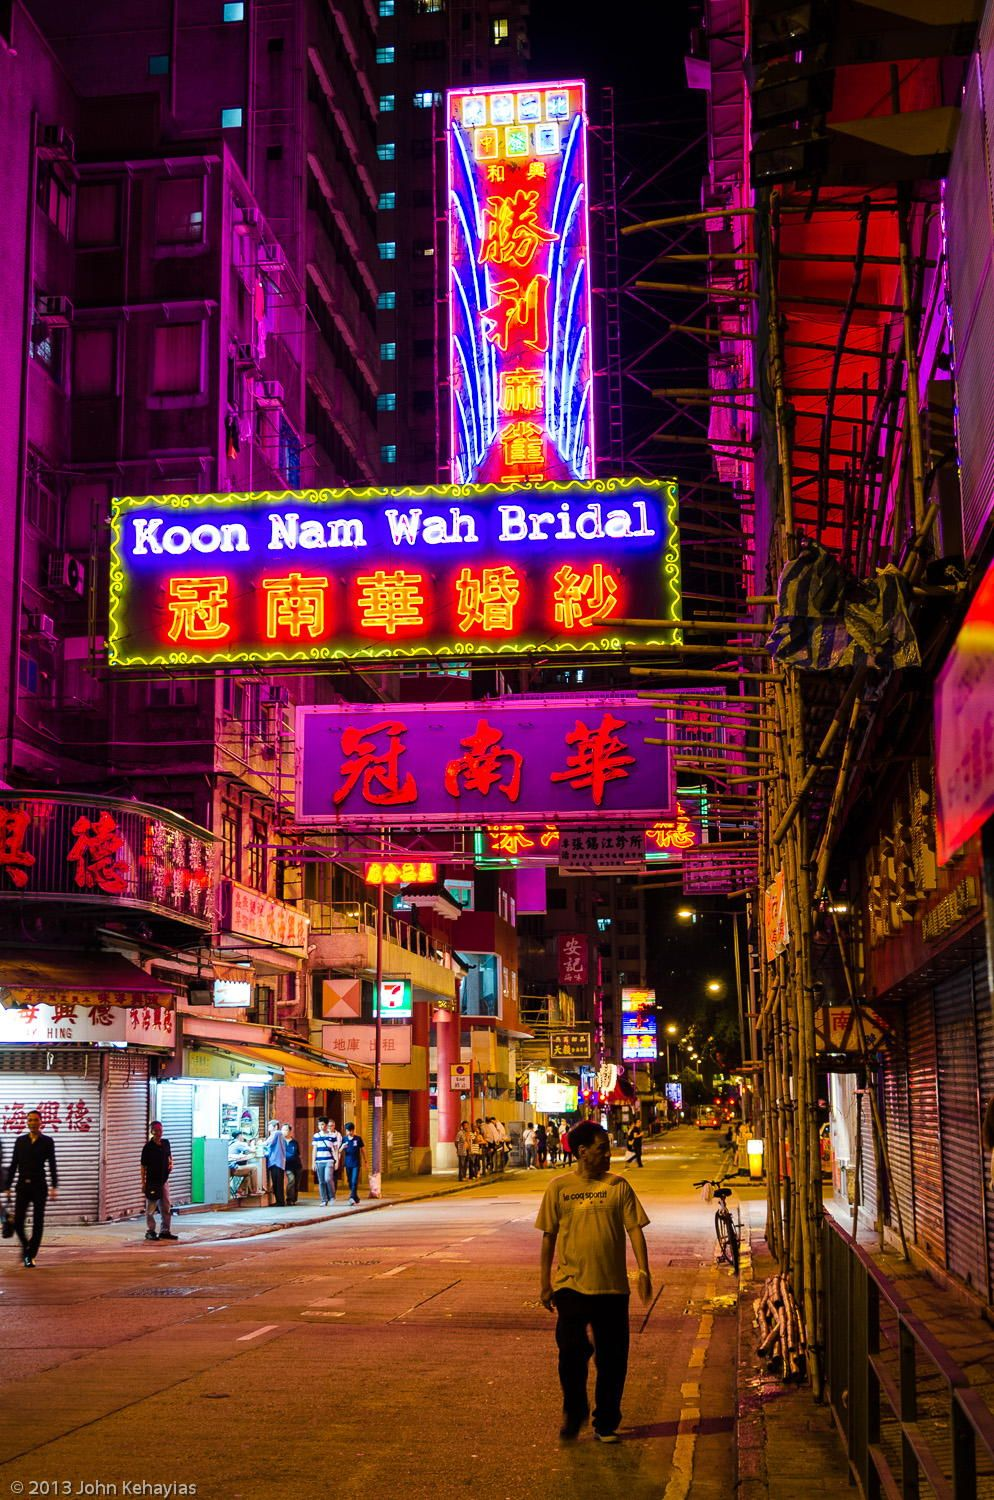 Streets of Kowloon in Hong Kong —Guide to moving to Hong Kong www.expatessentials.net